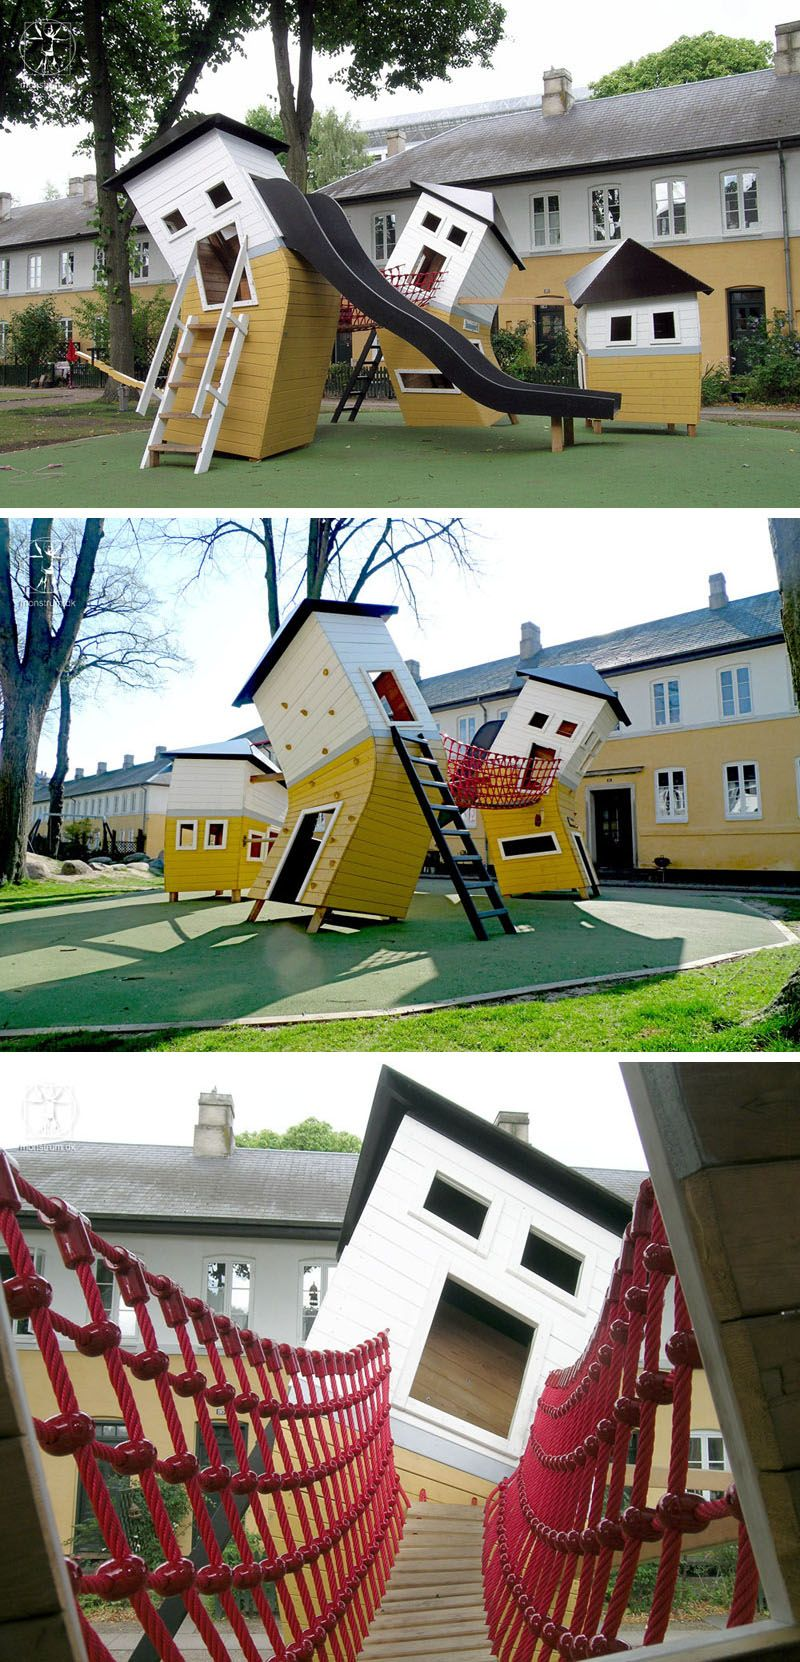 15 Creative Playground Designs You'll Wish Existed When You Were A Kid // Quirky Bent Houses